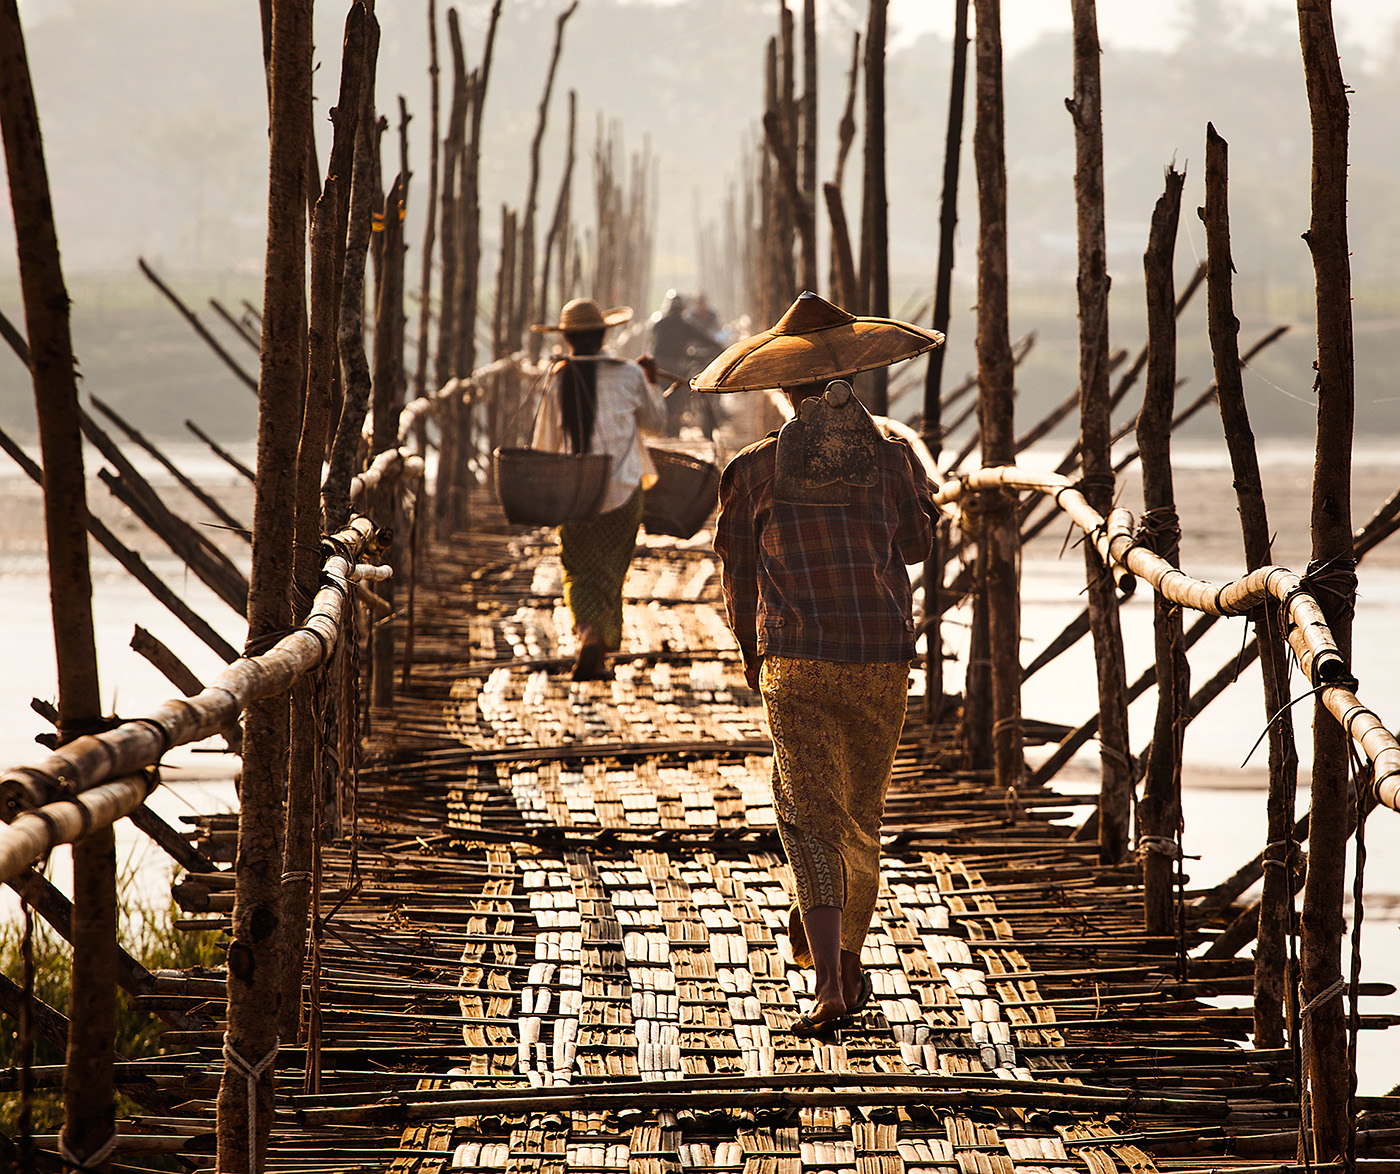 the bamboo bridge, my favorite place in Bhamo